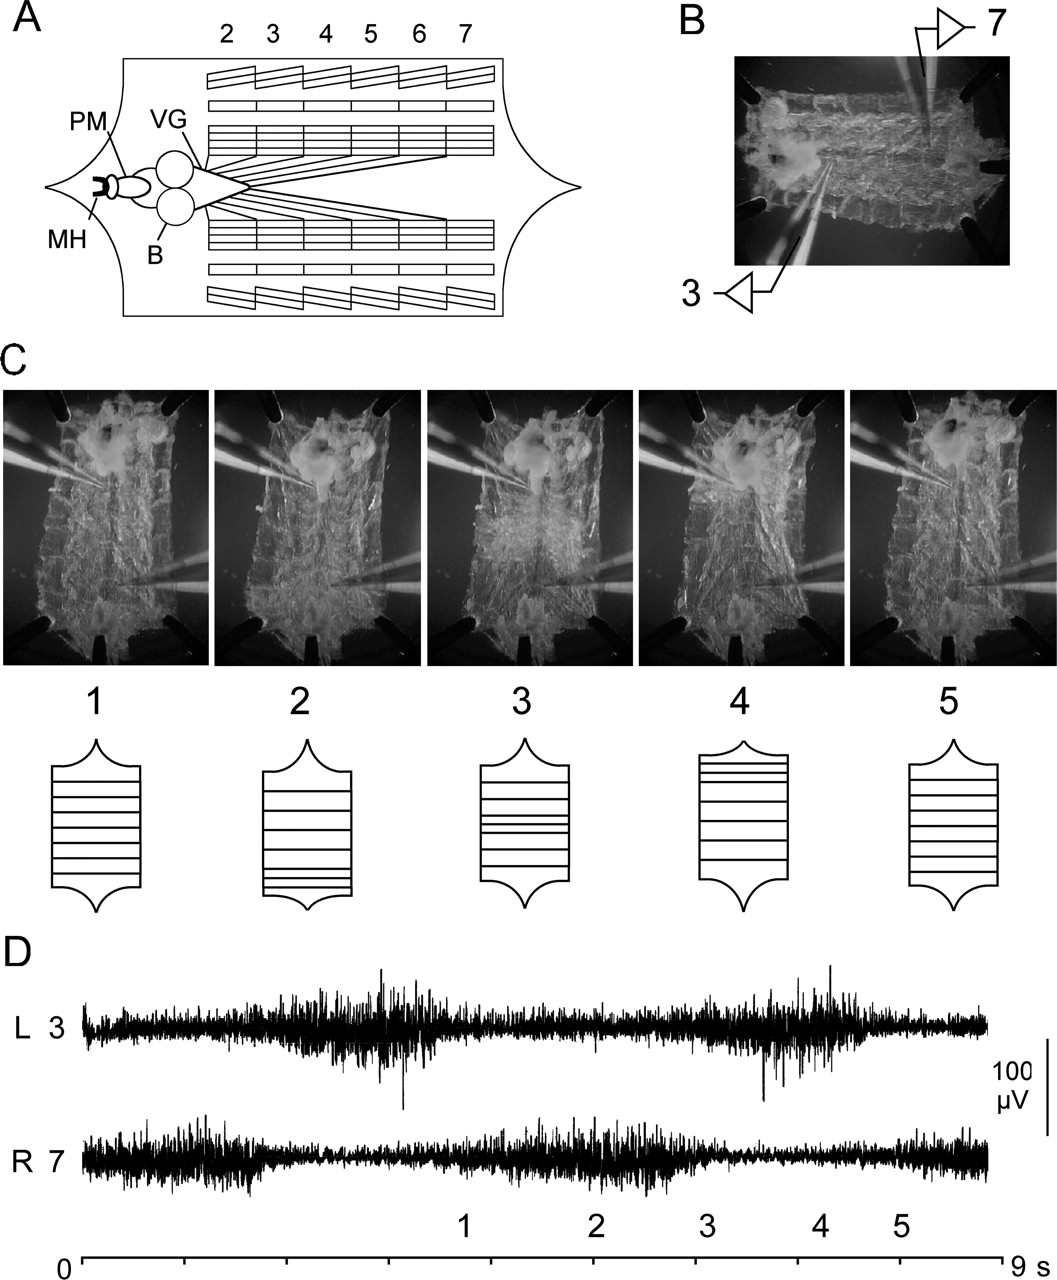 Coordination And Modulation Of Locomotion Pattern